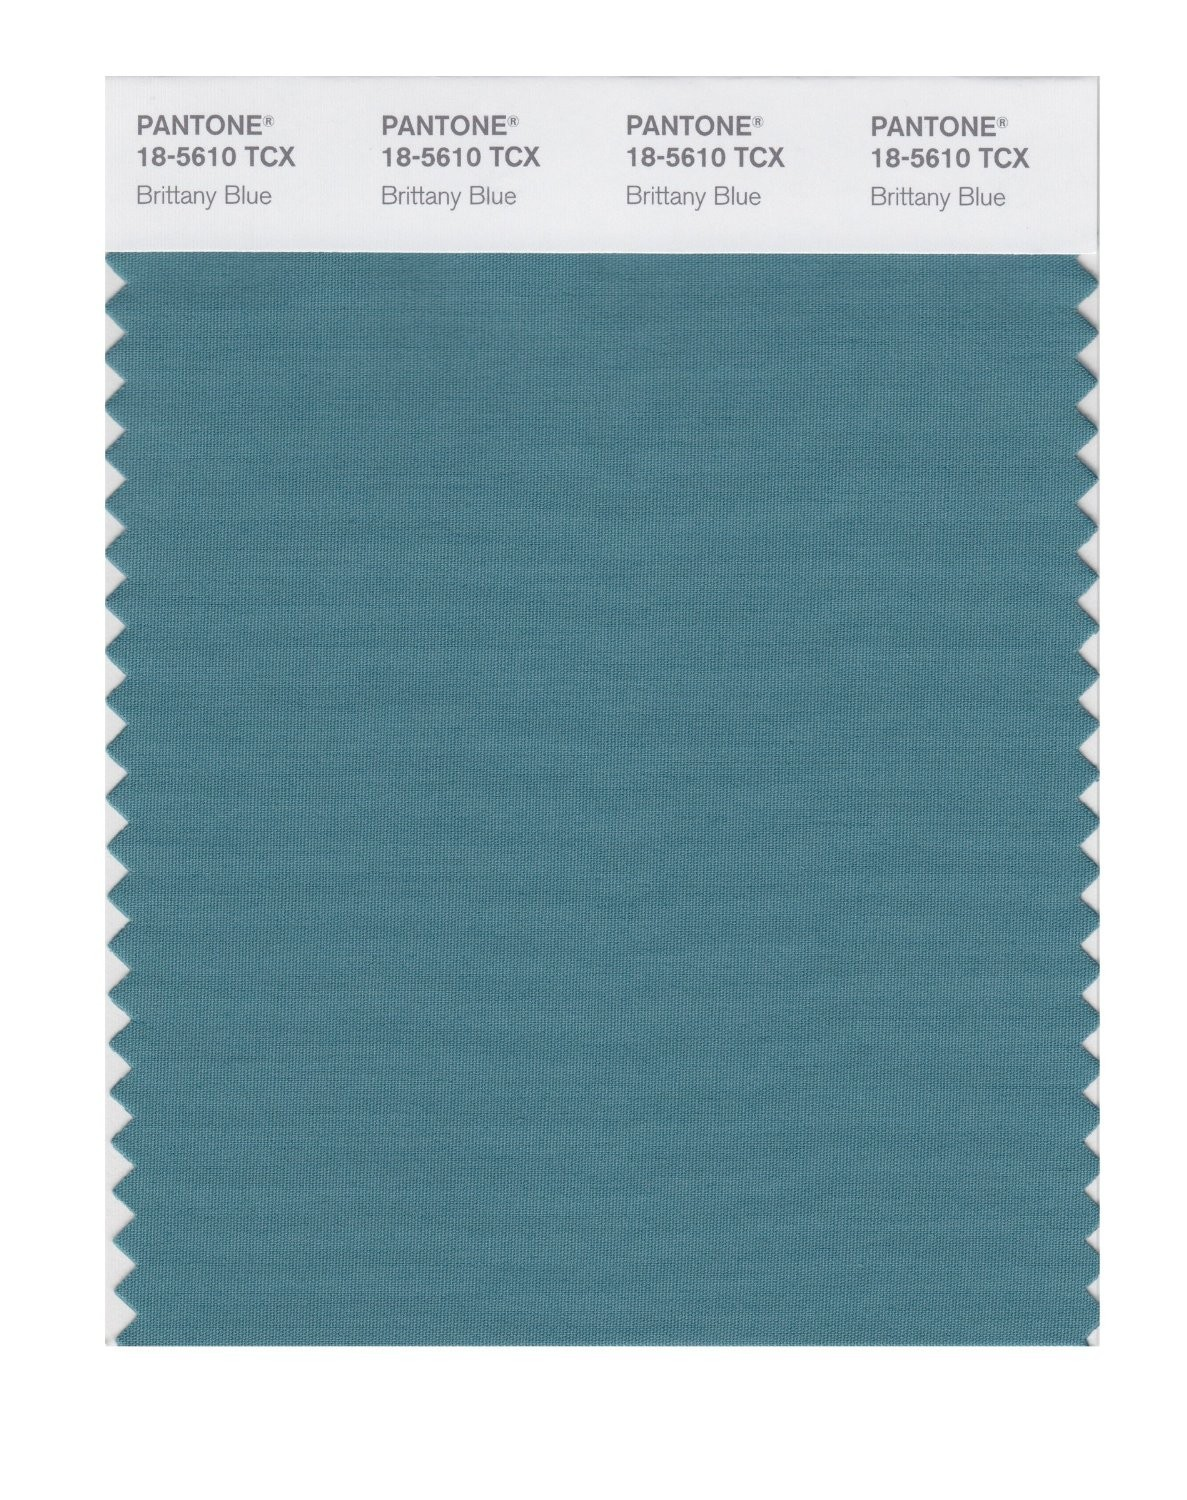 Pantone 18-5610 TCX Swatch Card Brittany Blue